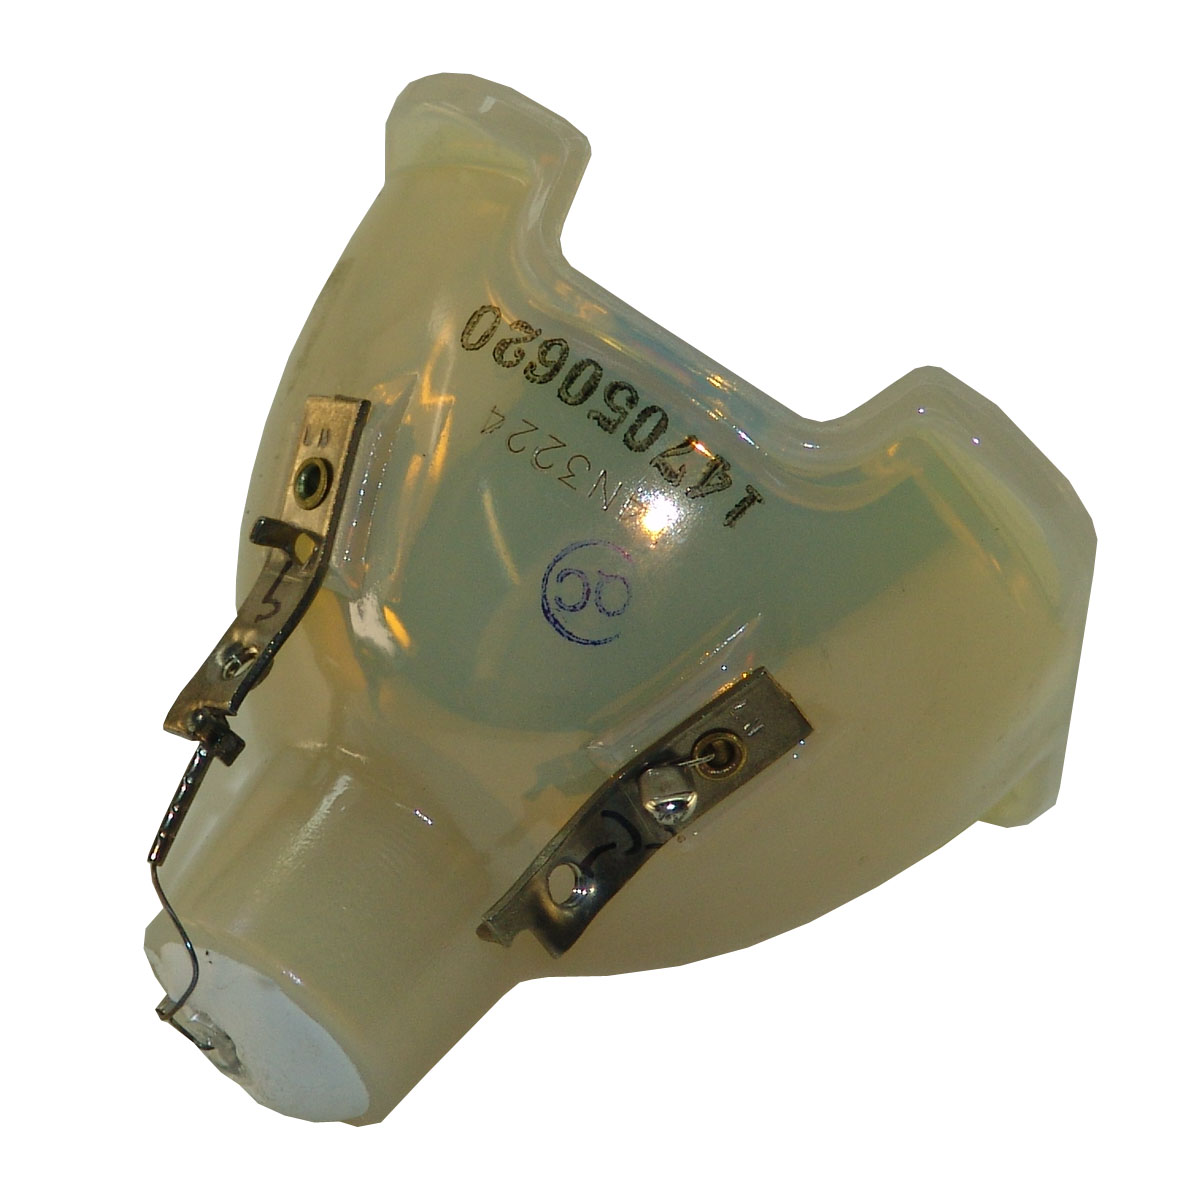 Original Philips Projector Lamp Replacement with Housing for Optoma DH1016 - image 4 of 5